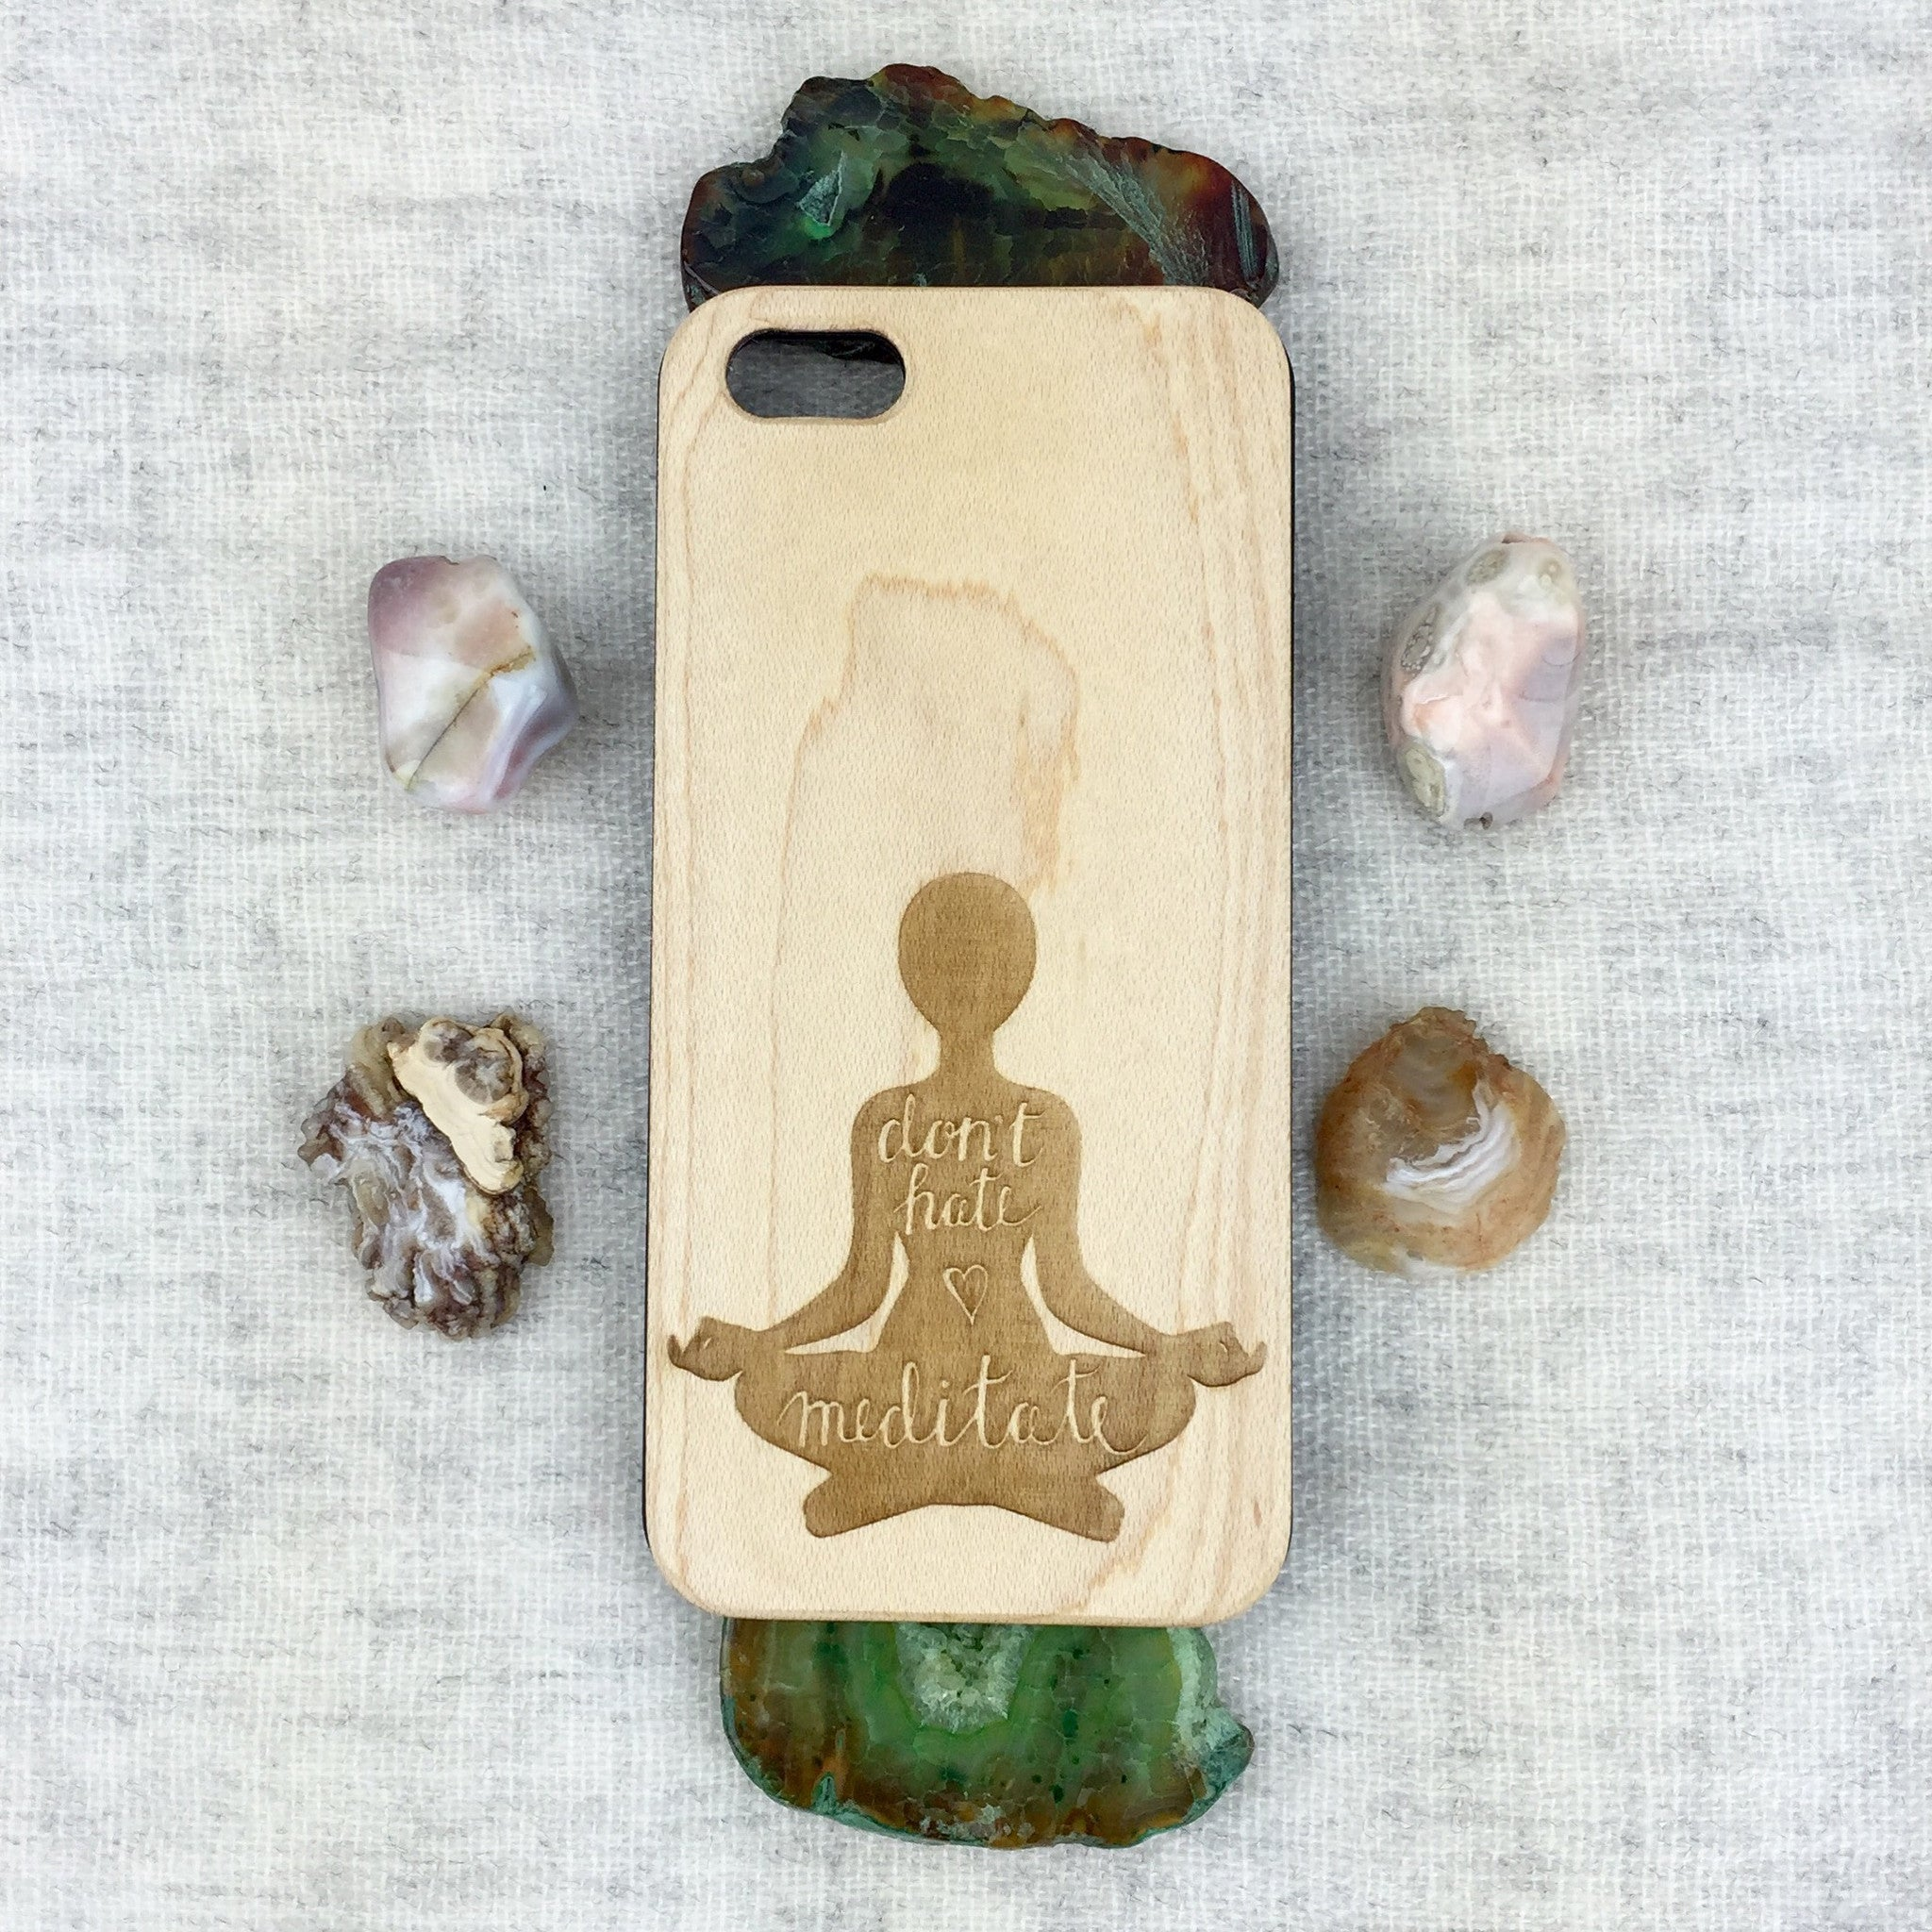 Don't Hate Meditate Wood Phone Case